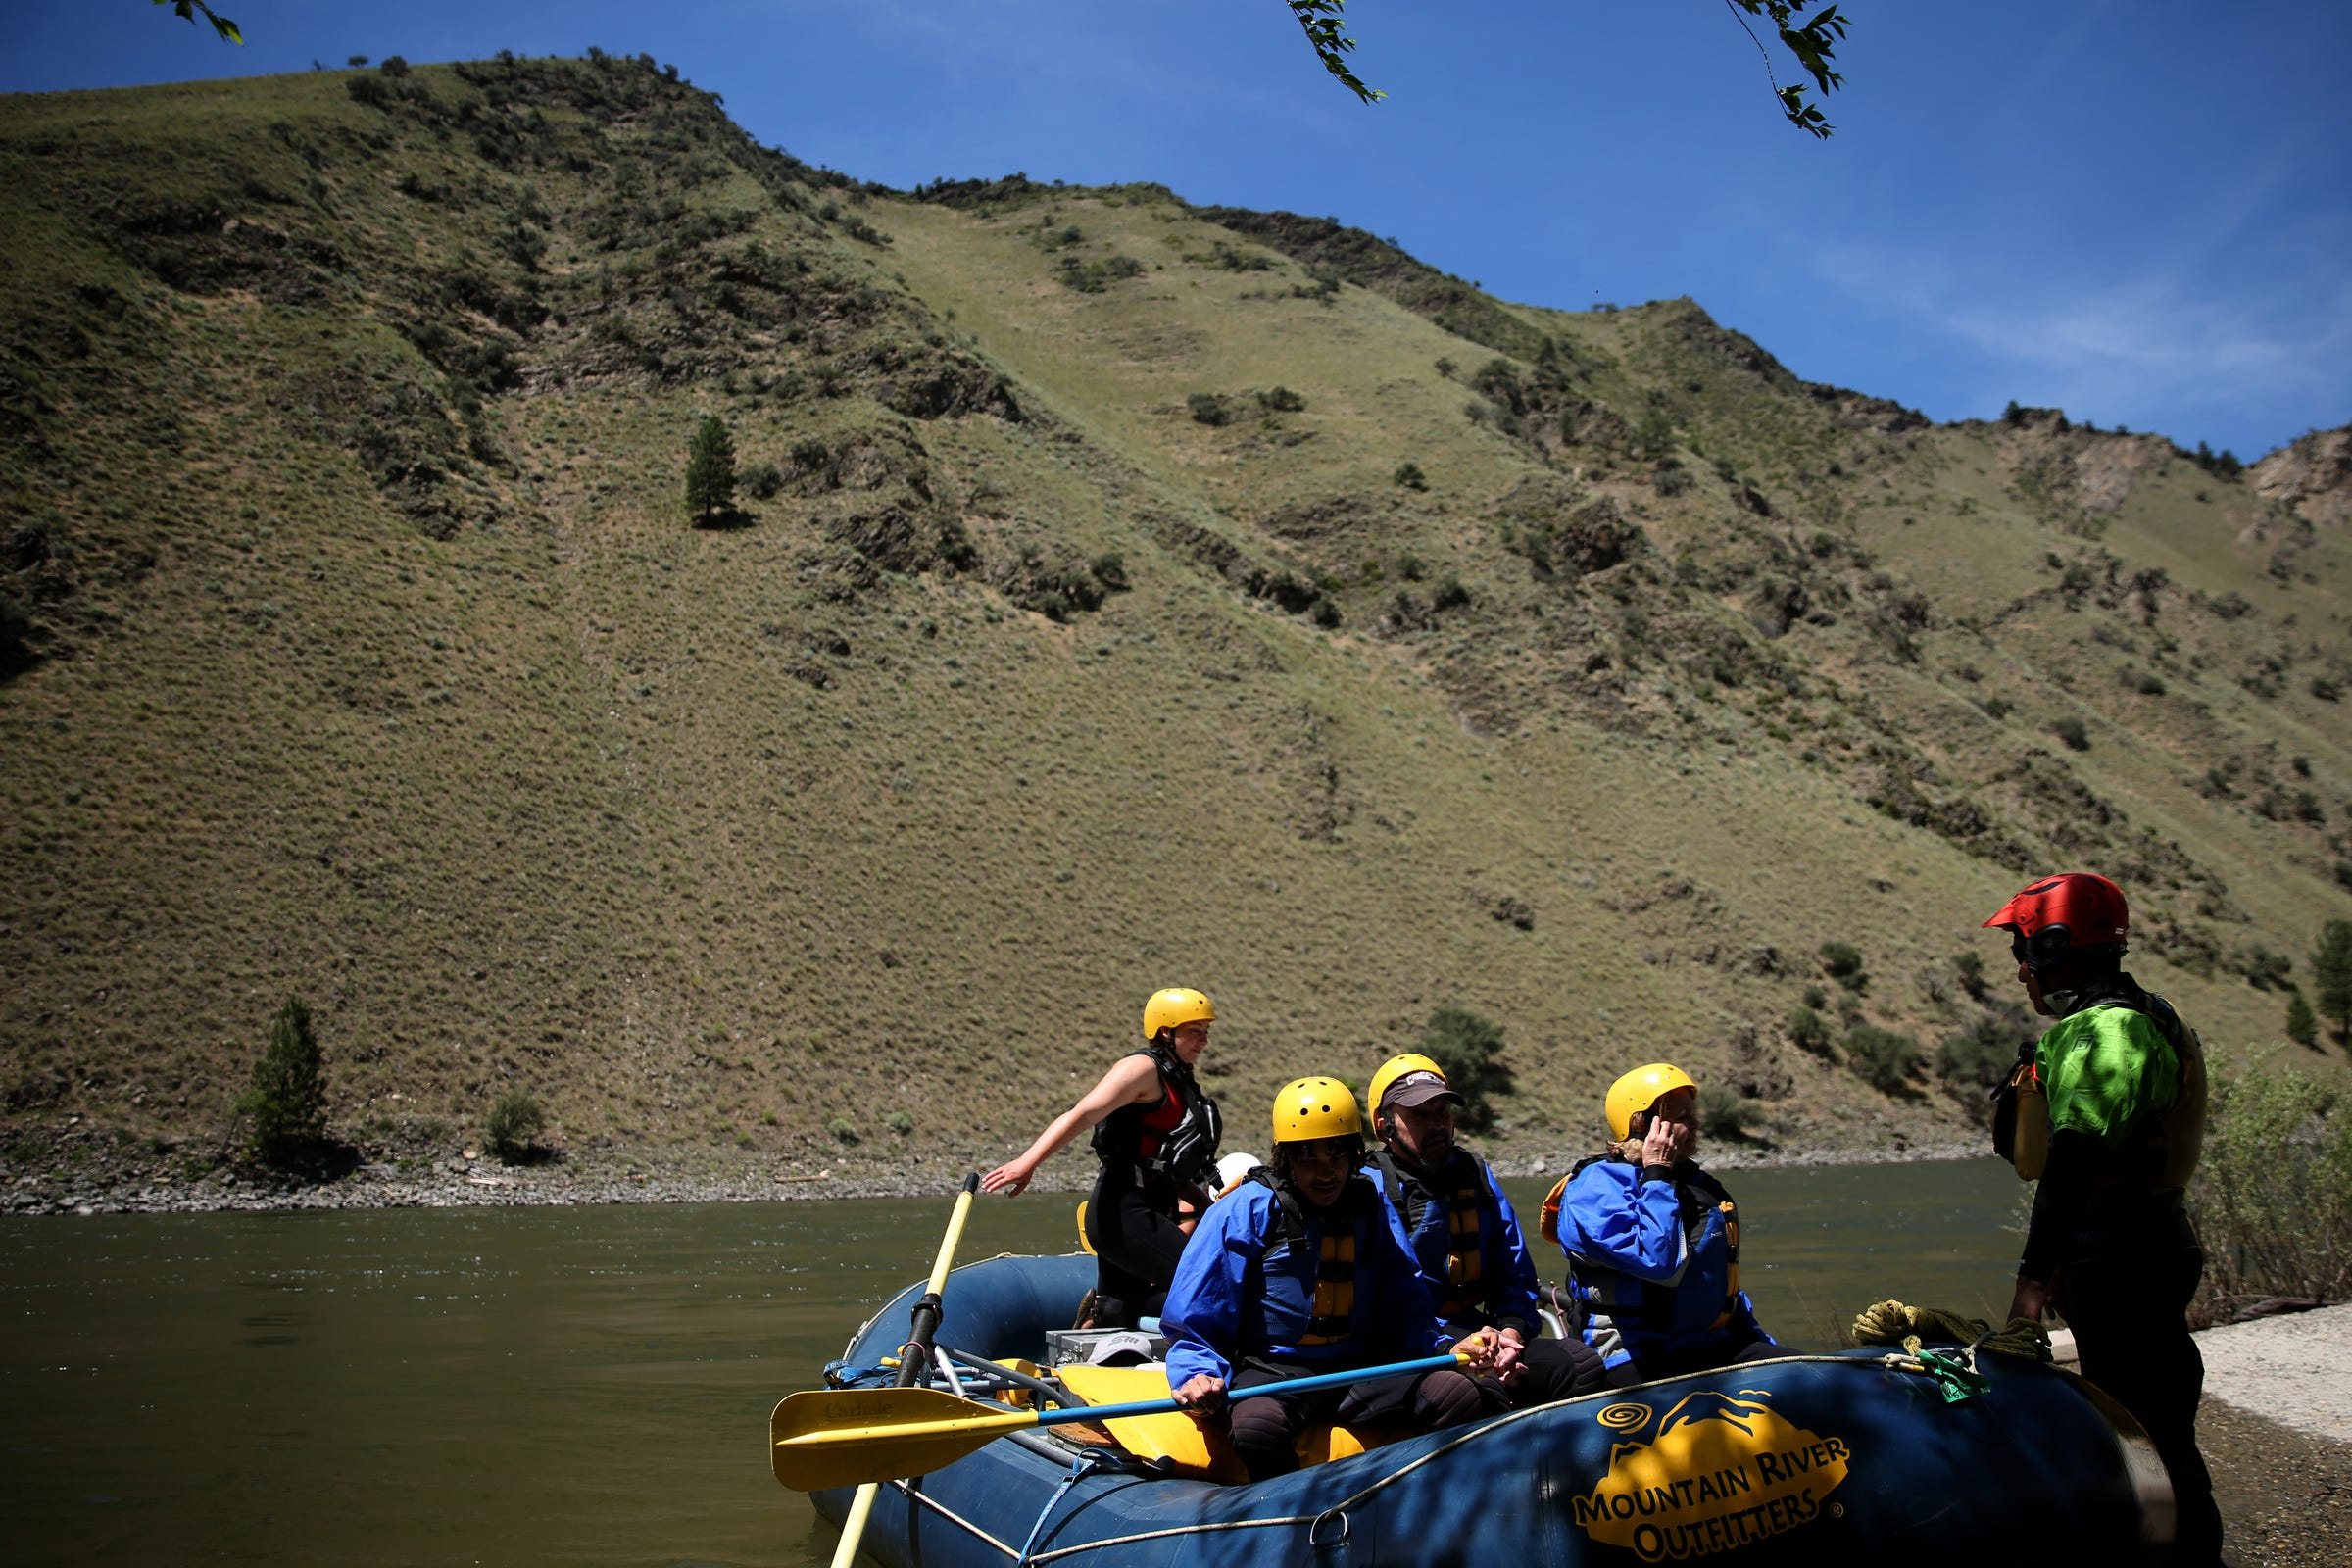 Mountain River Outfitters leads a rafting trip for tourists form Utah on the Salmon River at Riggins, Idaho on June 12, 2019.